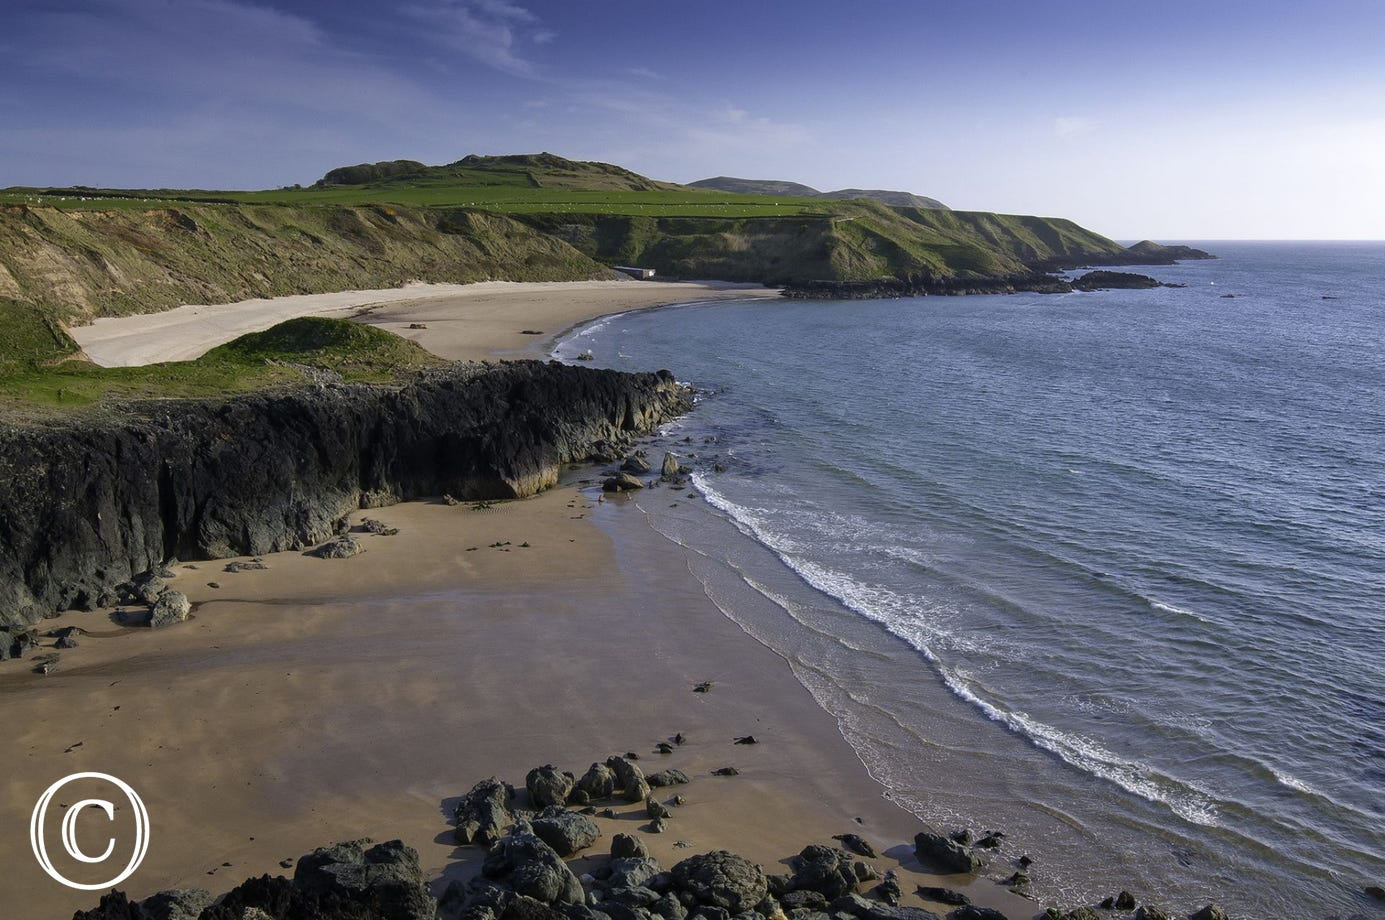 Poeth Oer (5.5 miles) where the sand sometimes 'whistles' under your feet